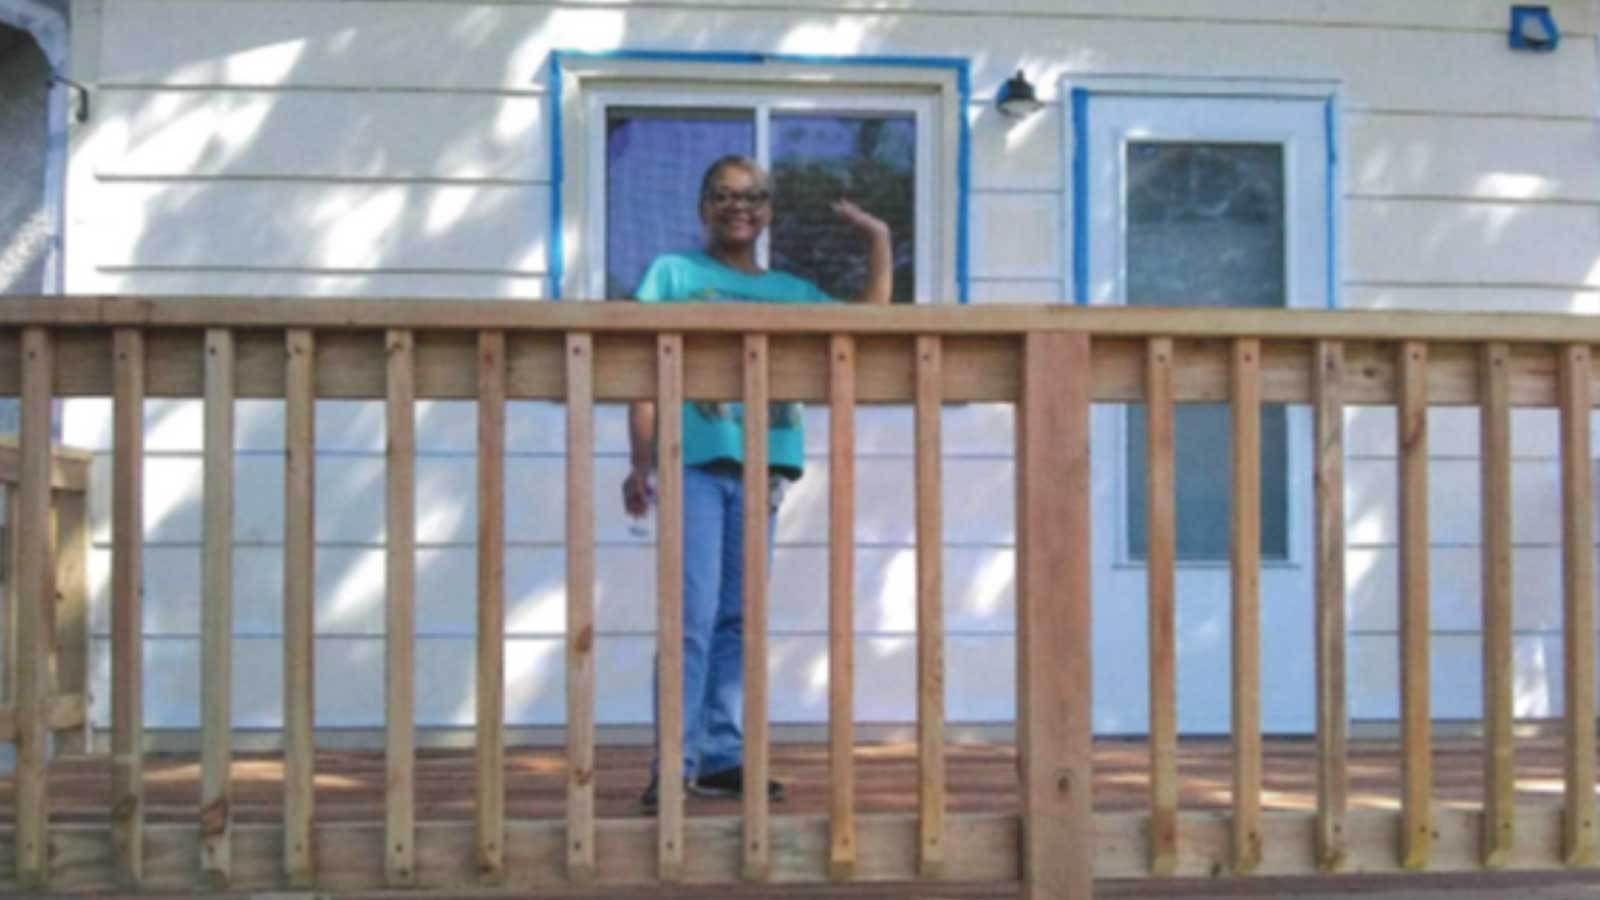 Nevonne standing on her new deck in a blue shirt and jeans, smiling and waving.